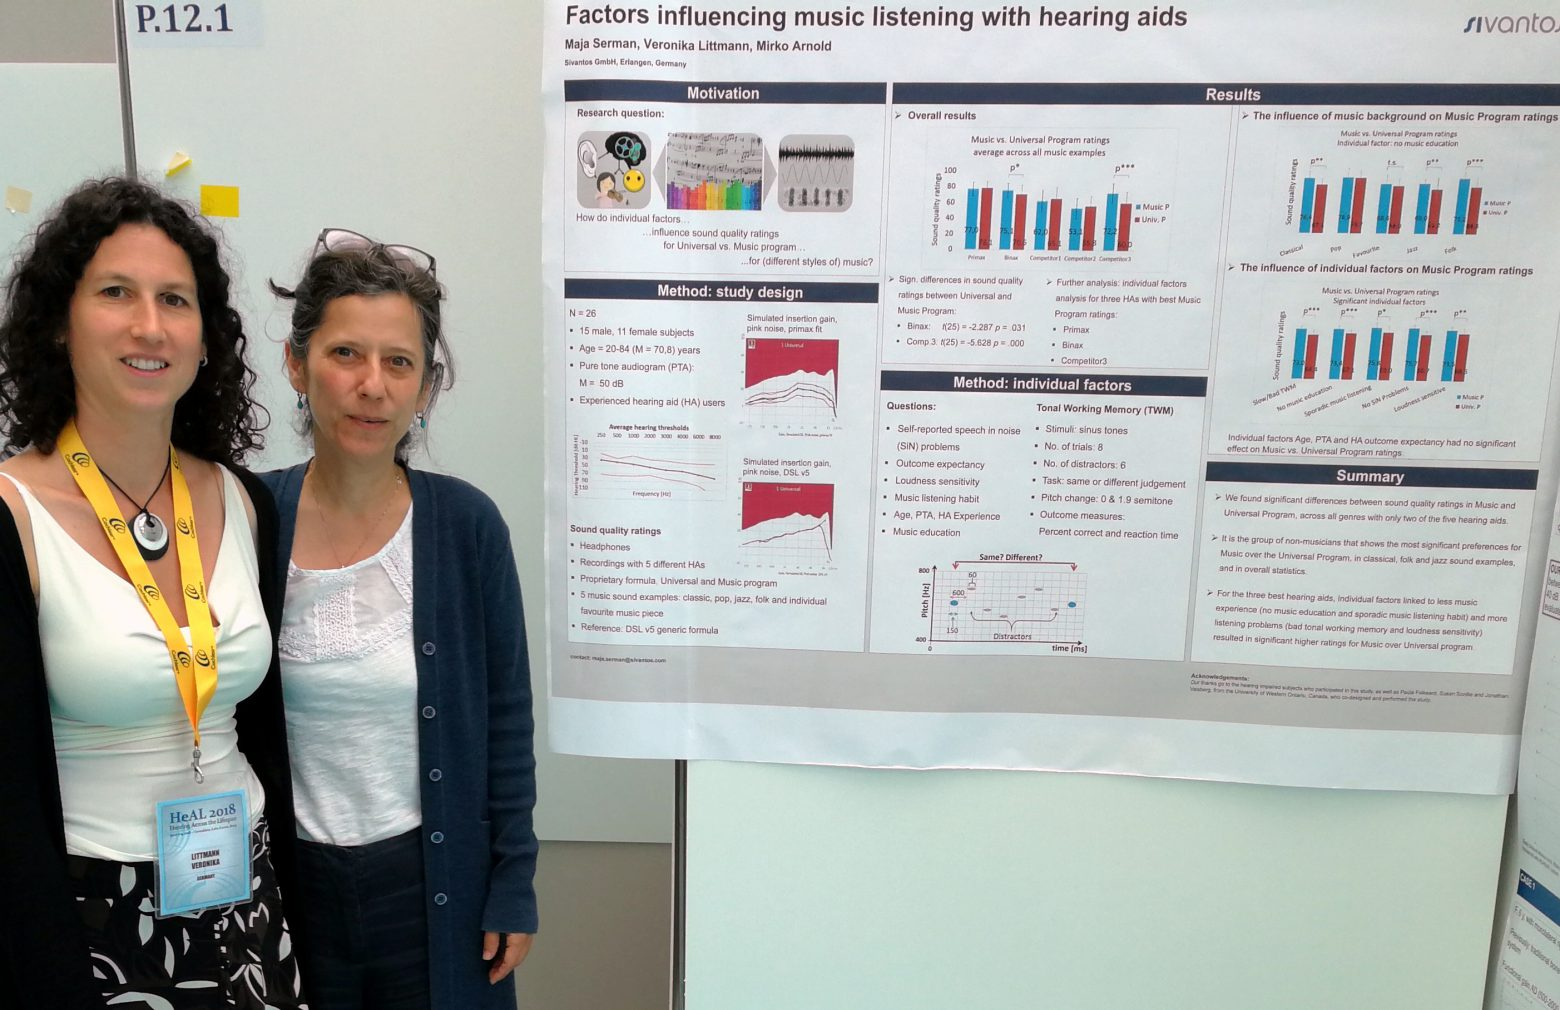 Two Sivantos audiologists with their research results as poster in the background